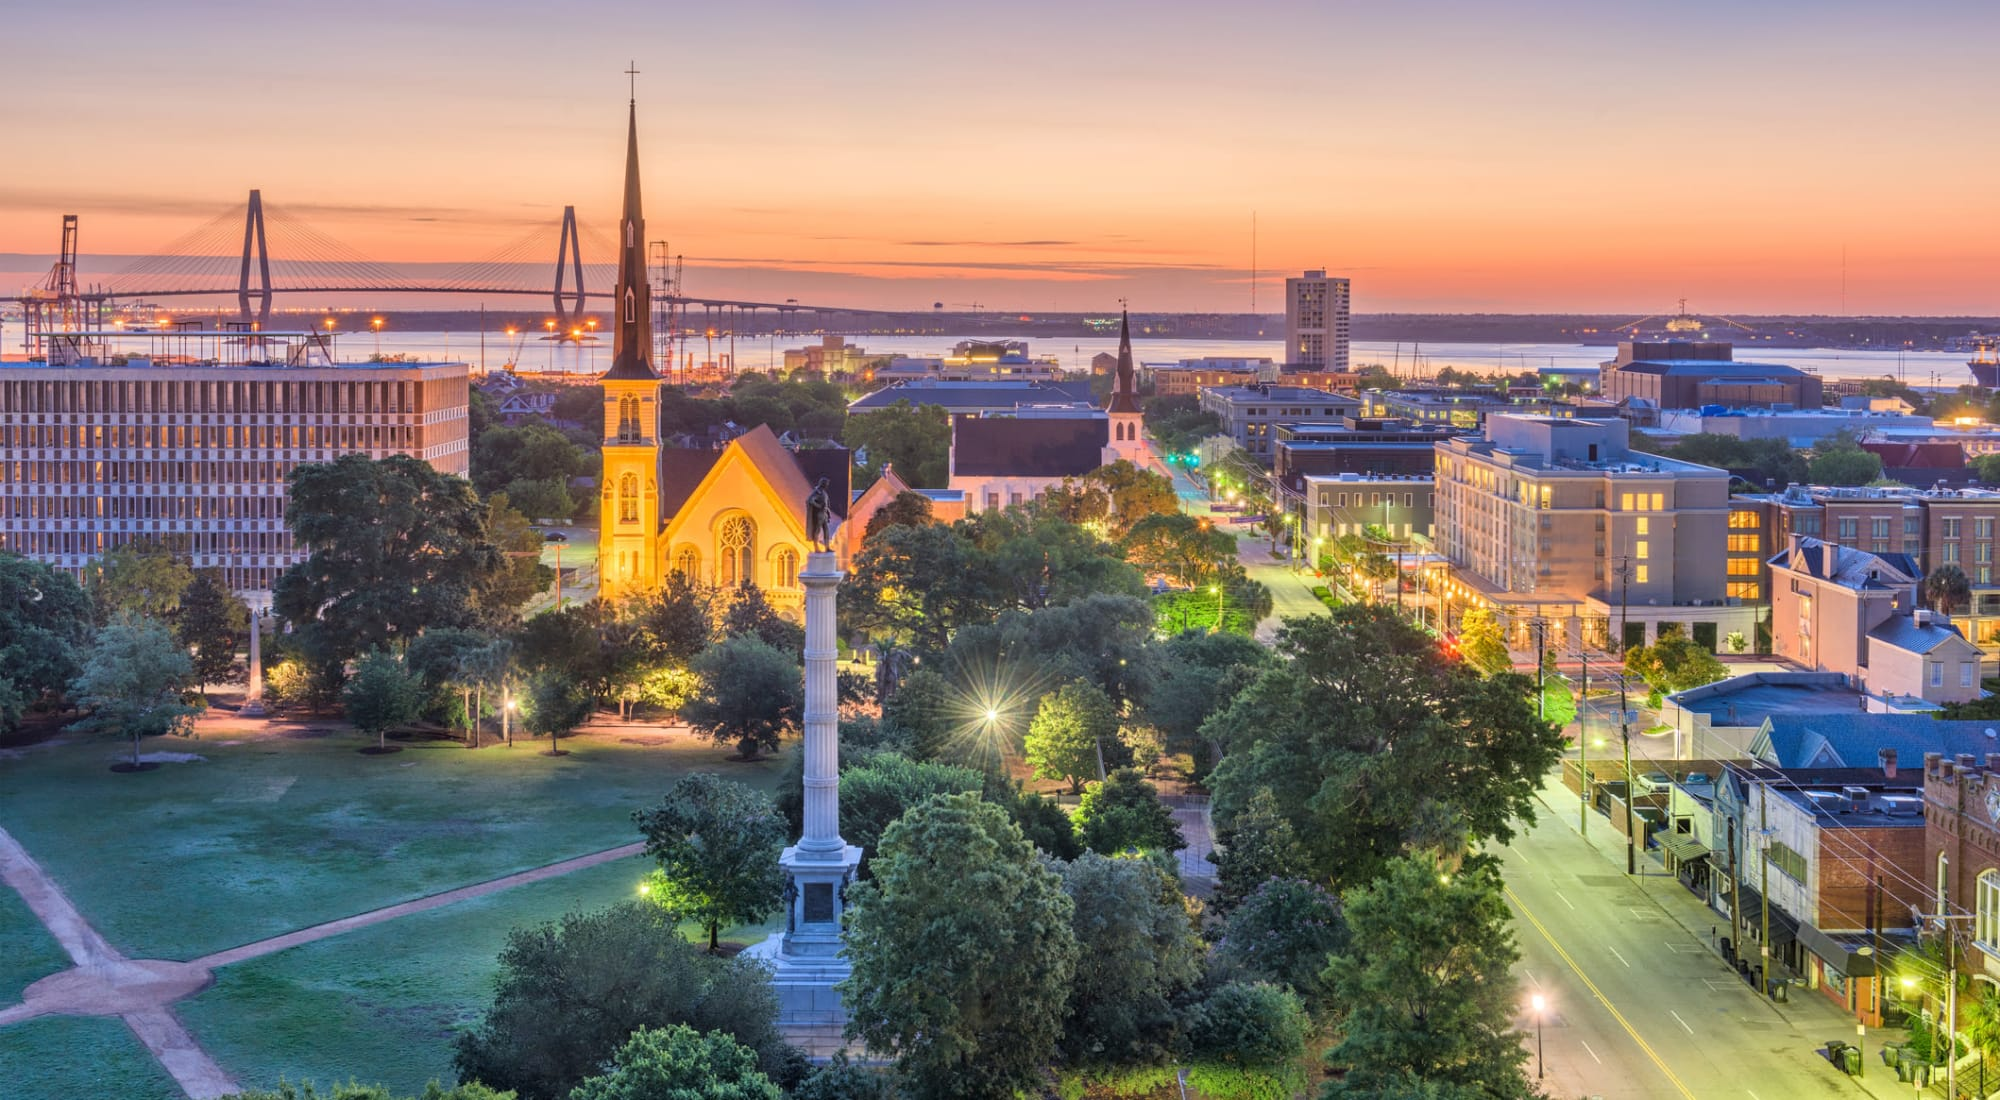 511 Meeting features in Charleston, South Carolina